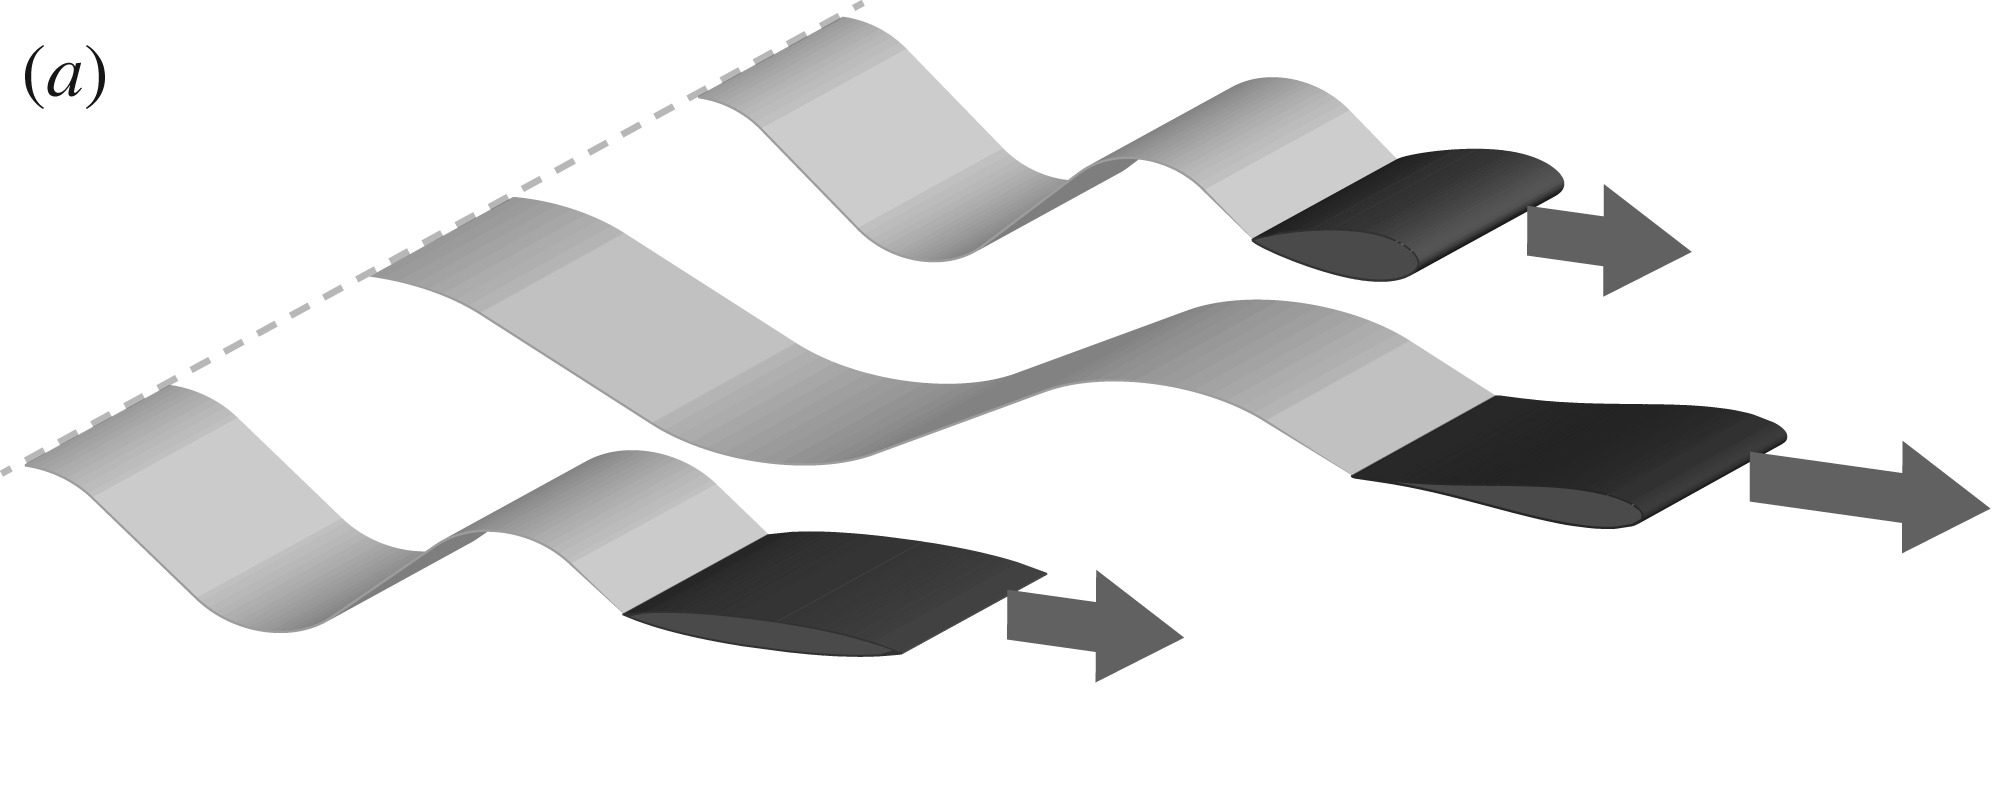 Effect of shape on the forward flight of a heaving and plunging wing. (a) A race among wings or of varying cross-section. (b) Problem idealization: A wing is driven to heave up and down with amplitude A and frequency f, resulting in self-propulsion through a fluid while towing a drag payload. (c) Experimental realization: A 3D printed foil is connected to an upright shaft through which a vertical heaving motion is imposed, and rotary bearings allow for forward propulsion in orbits around a water tank. Image via NYU.